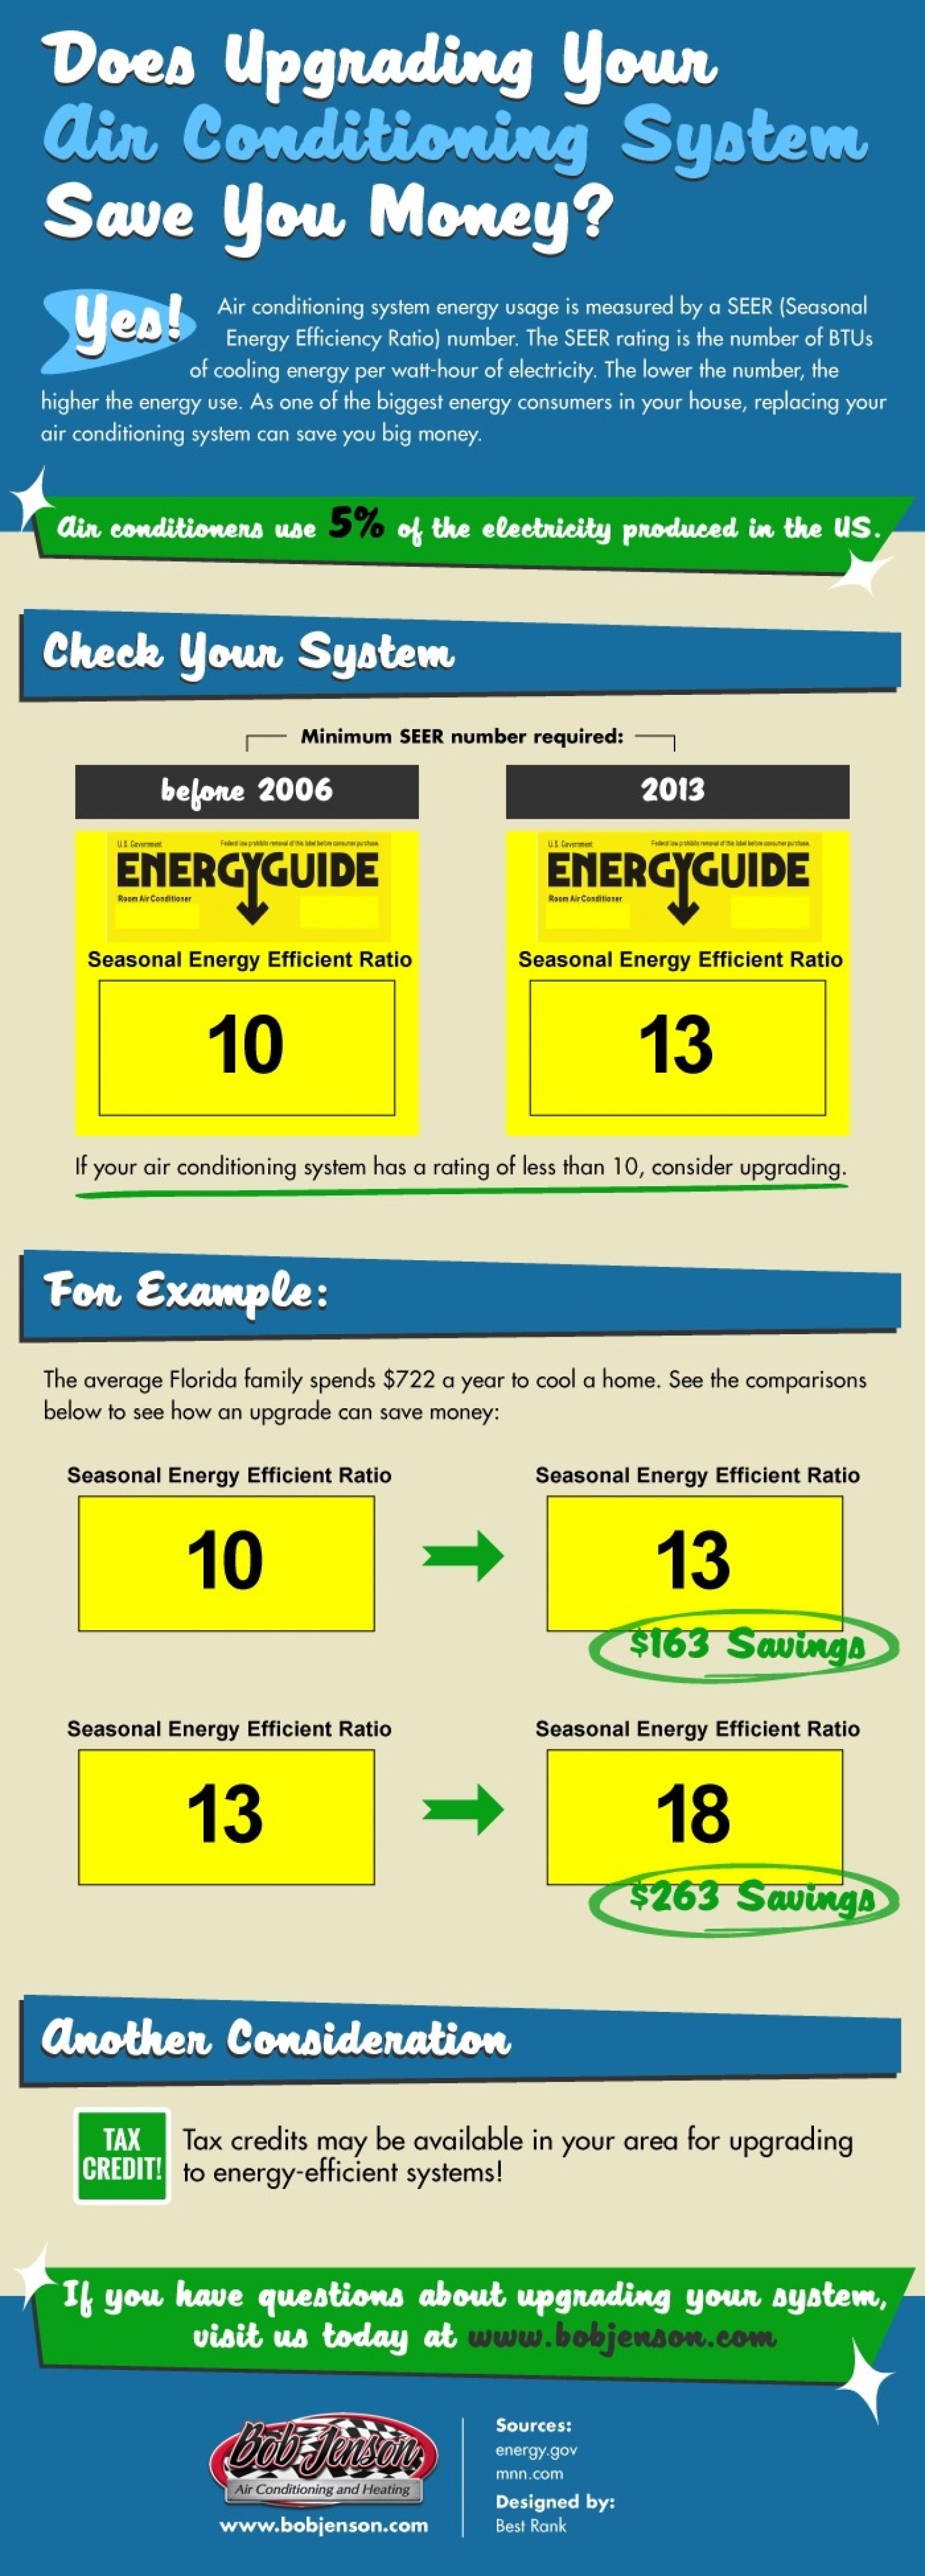 Does Upgrading Your Air Conditioning System Save You Money? Infographic